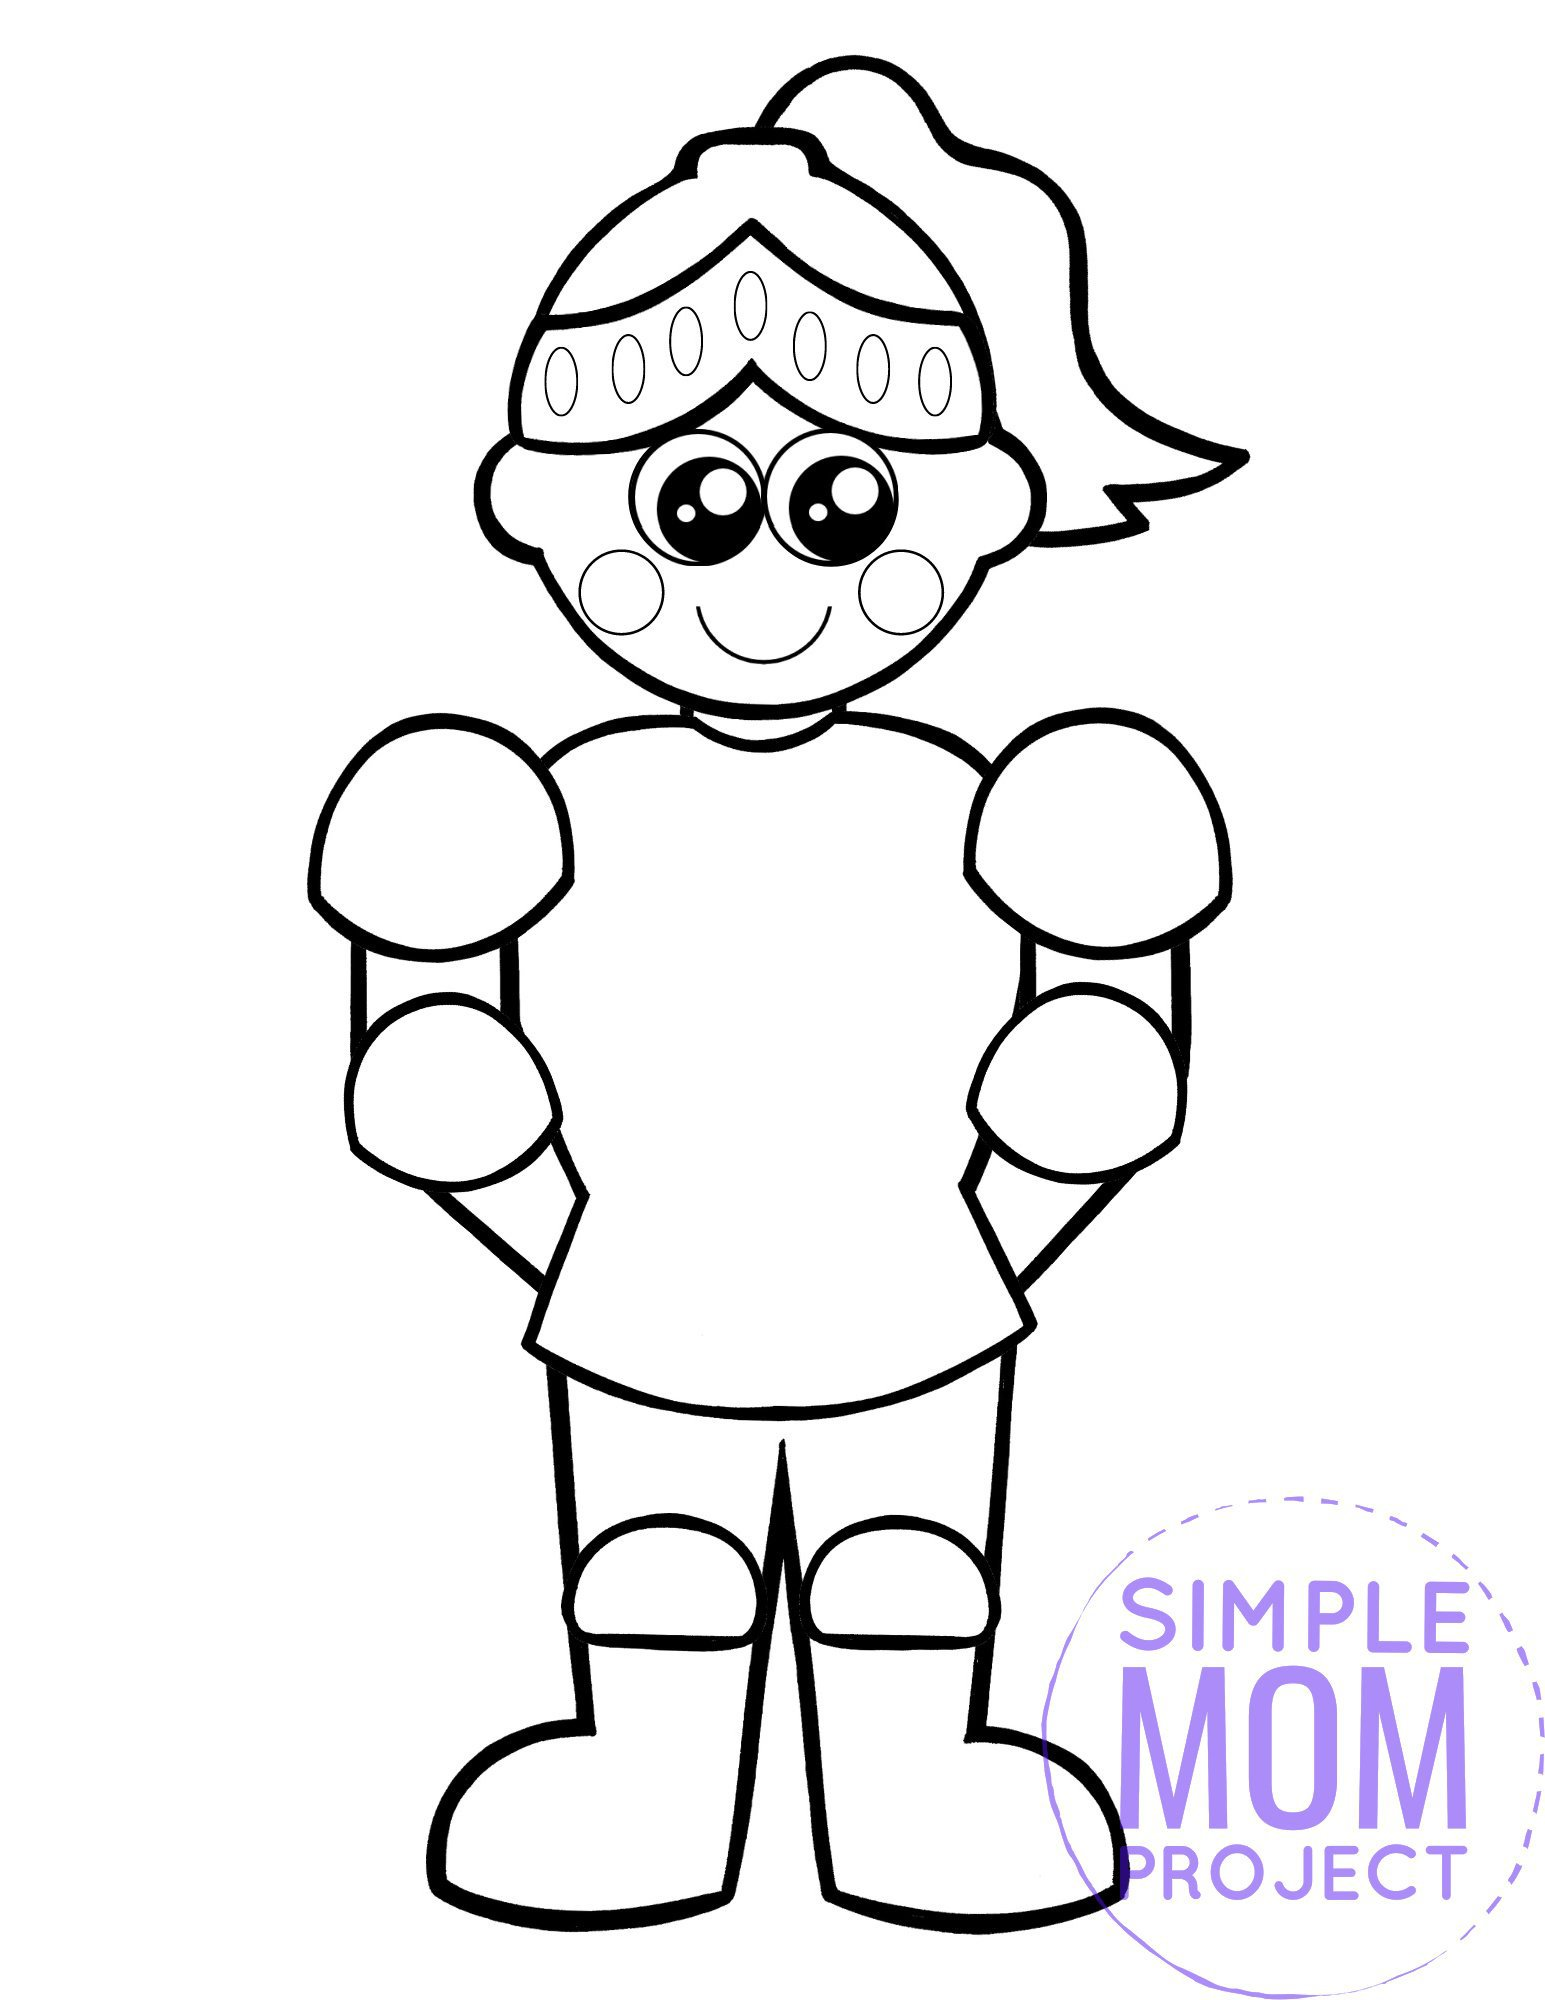 printable royal knight page template for kids, preschoolers and kindergartners